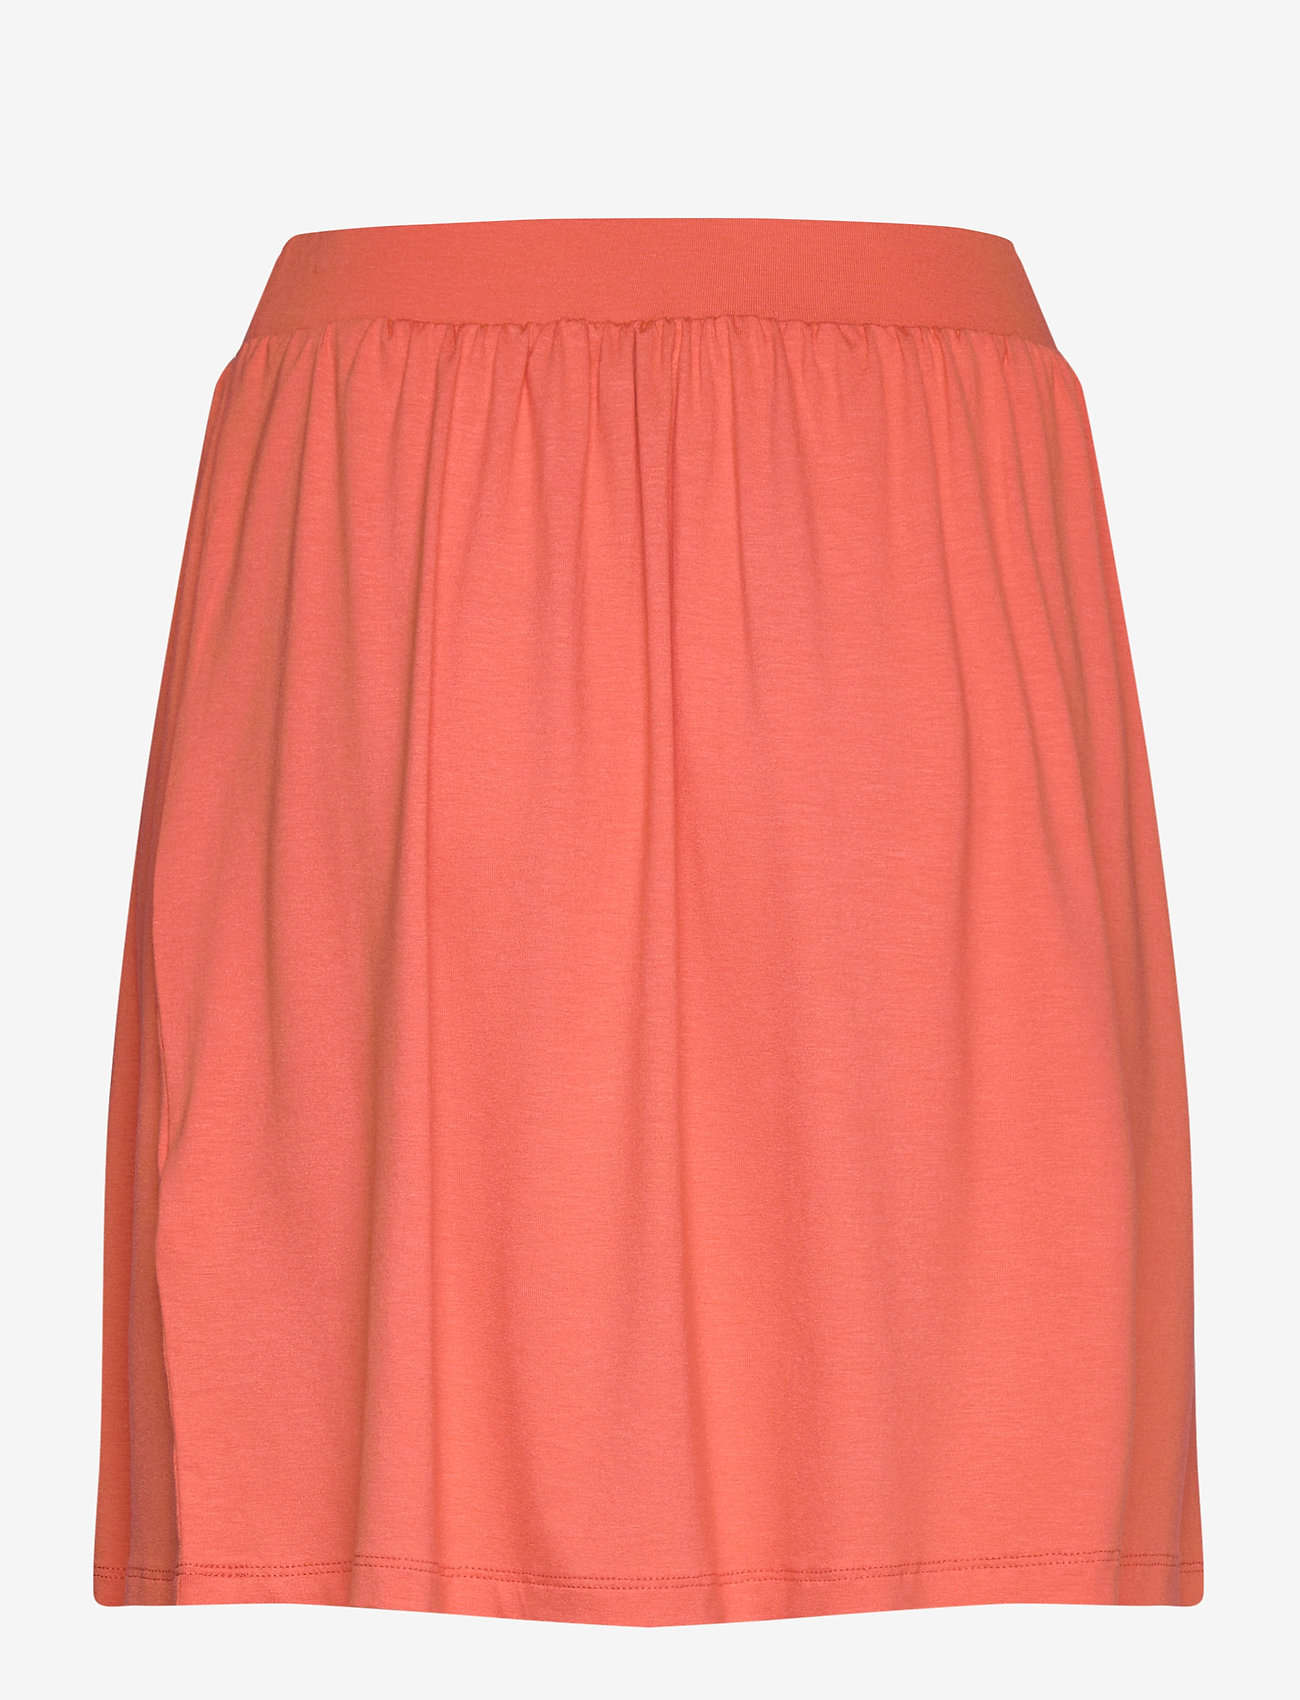 Esprit Casual - Skirts knitted - short skirts - coral - 1